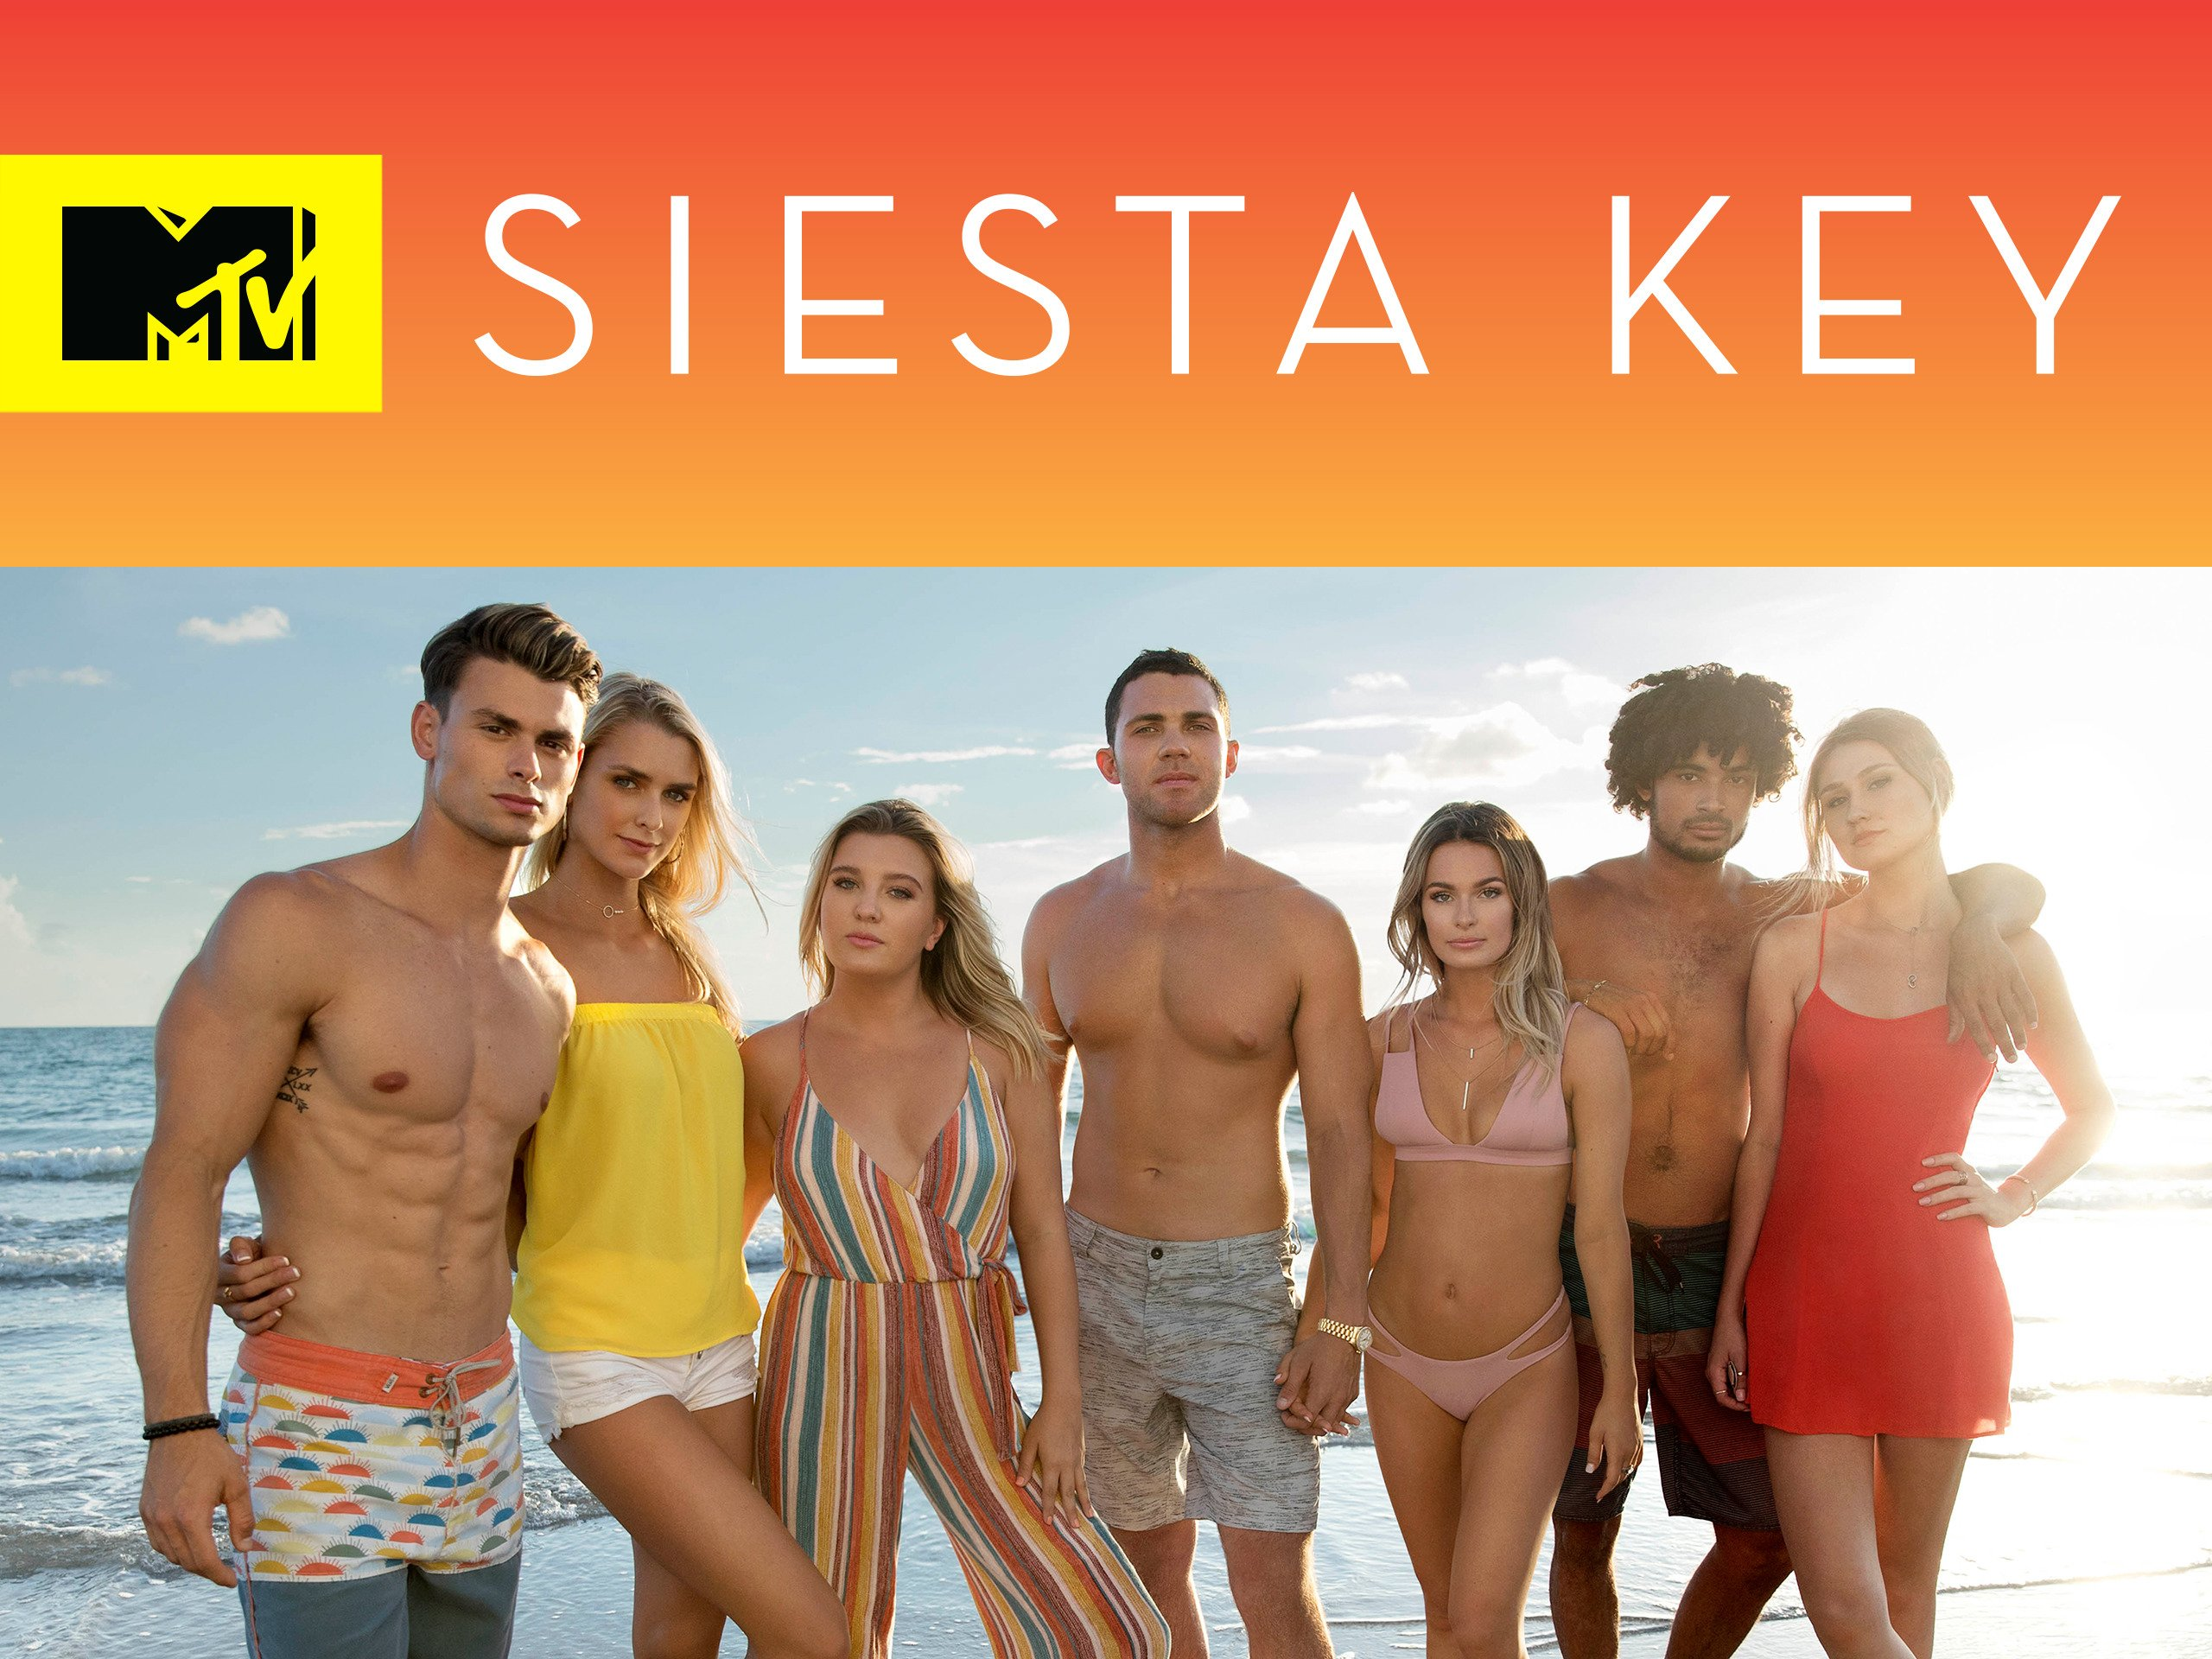 Watch Siesta Key Season 1 | Prime Video